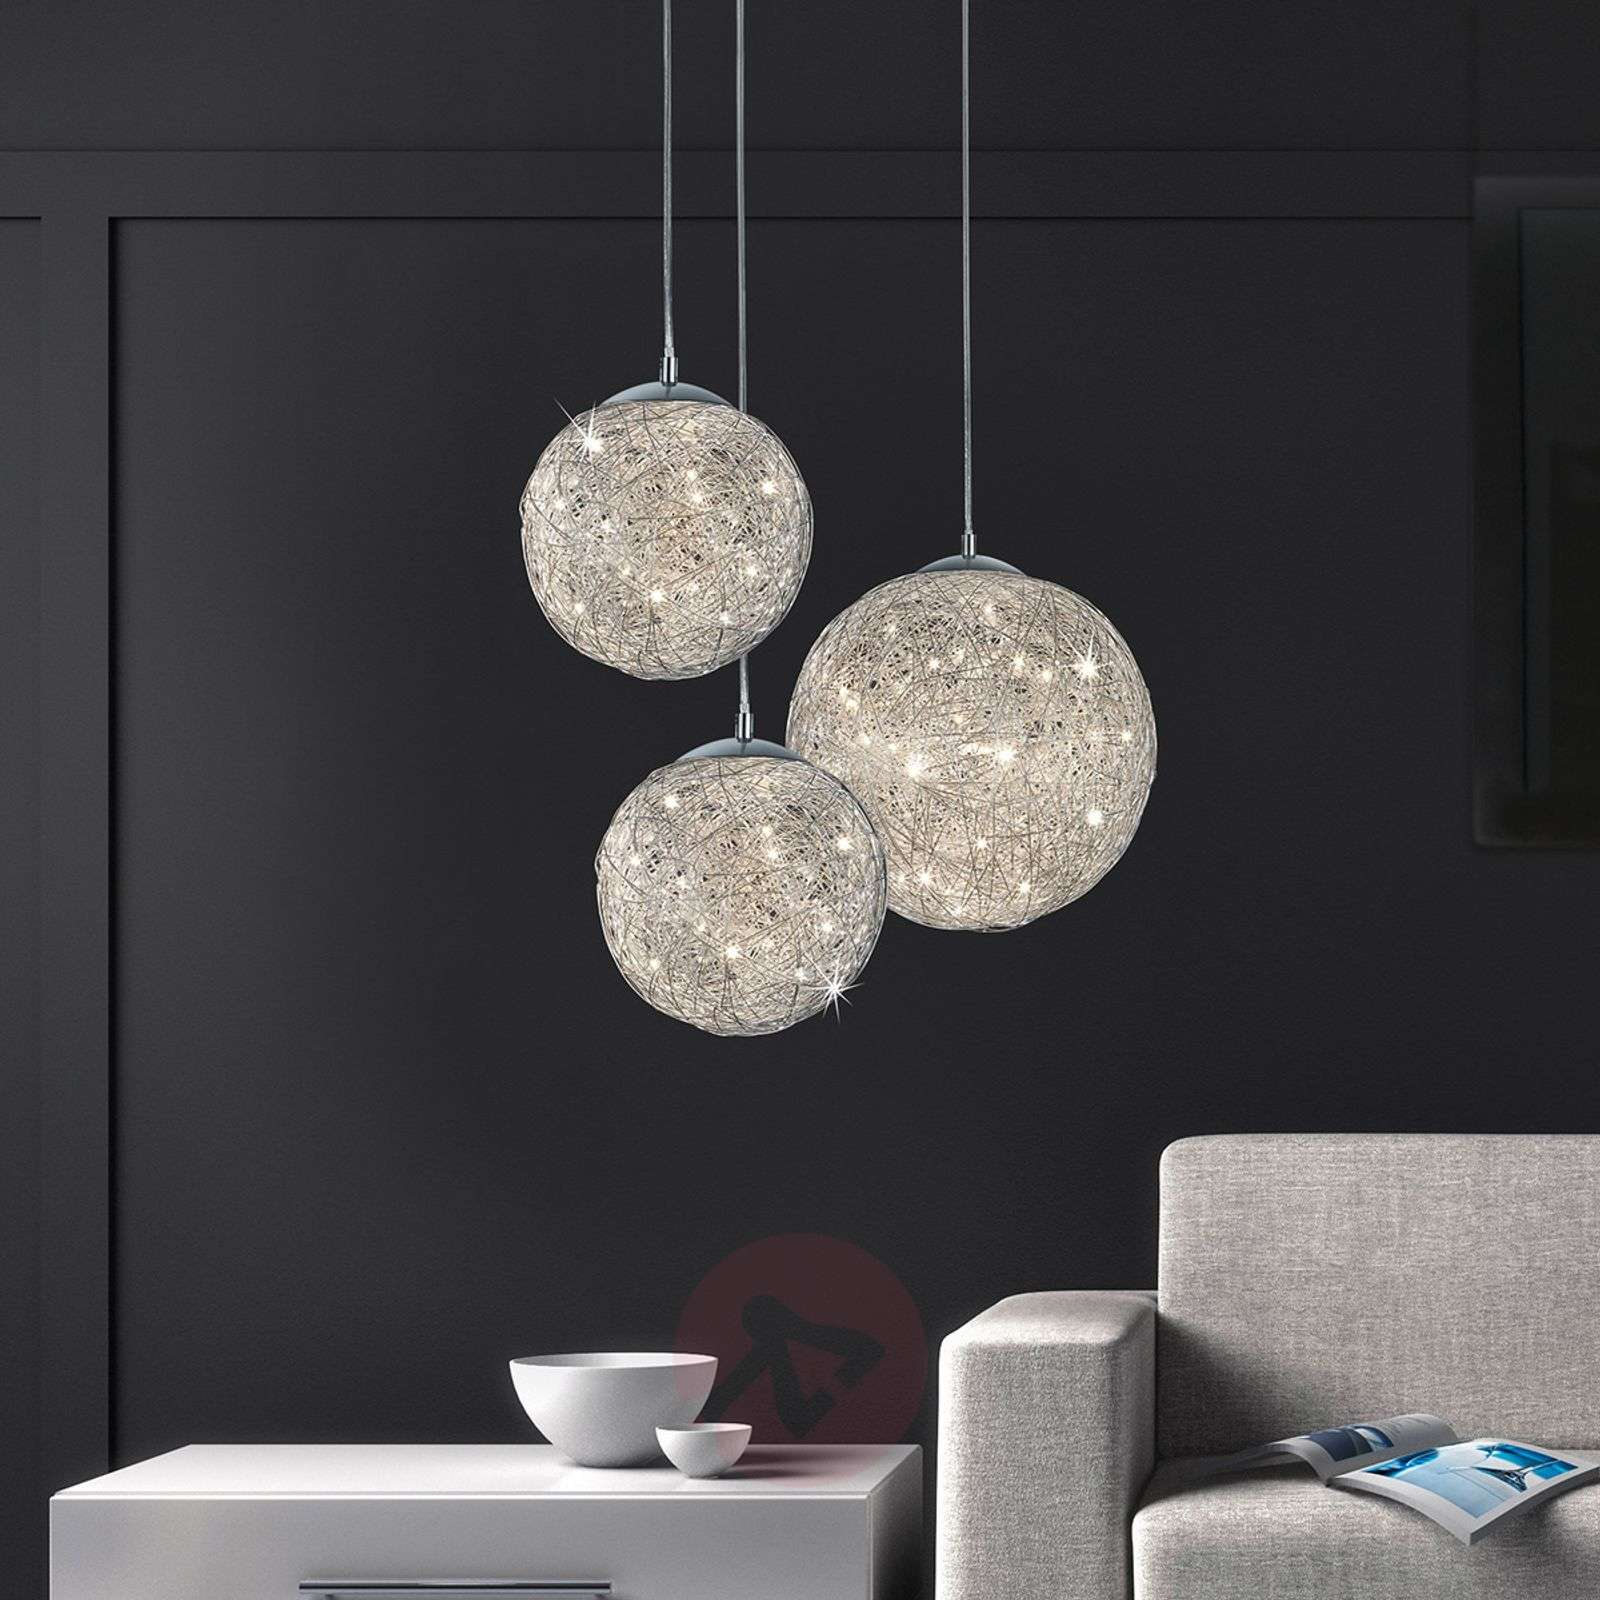 Thunder breath-taking LED pendant light Ø 40 cm-9004754-01